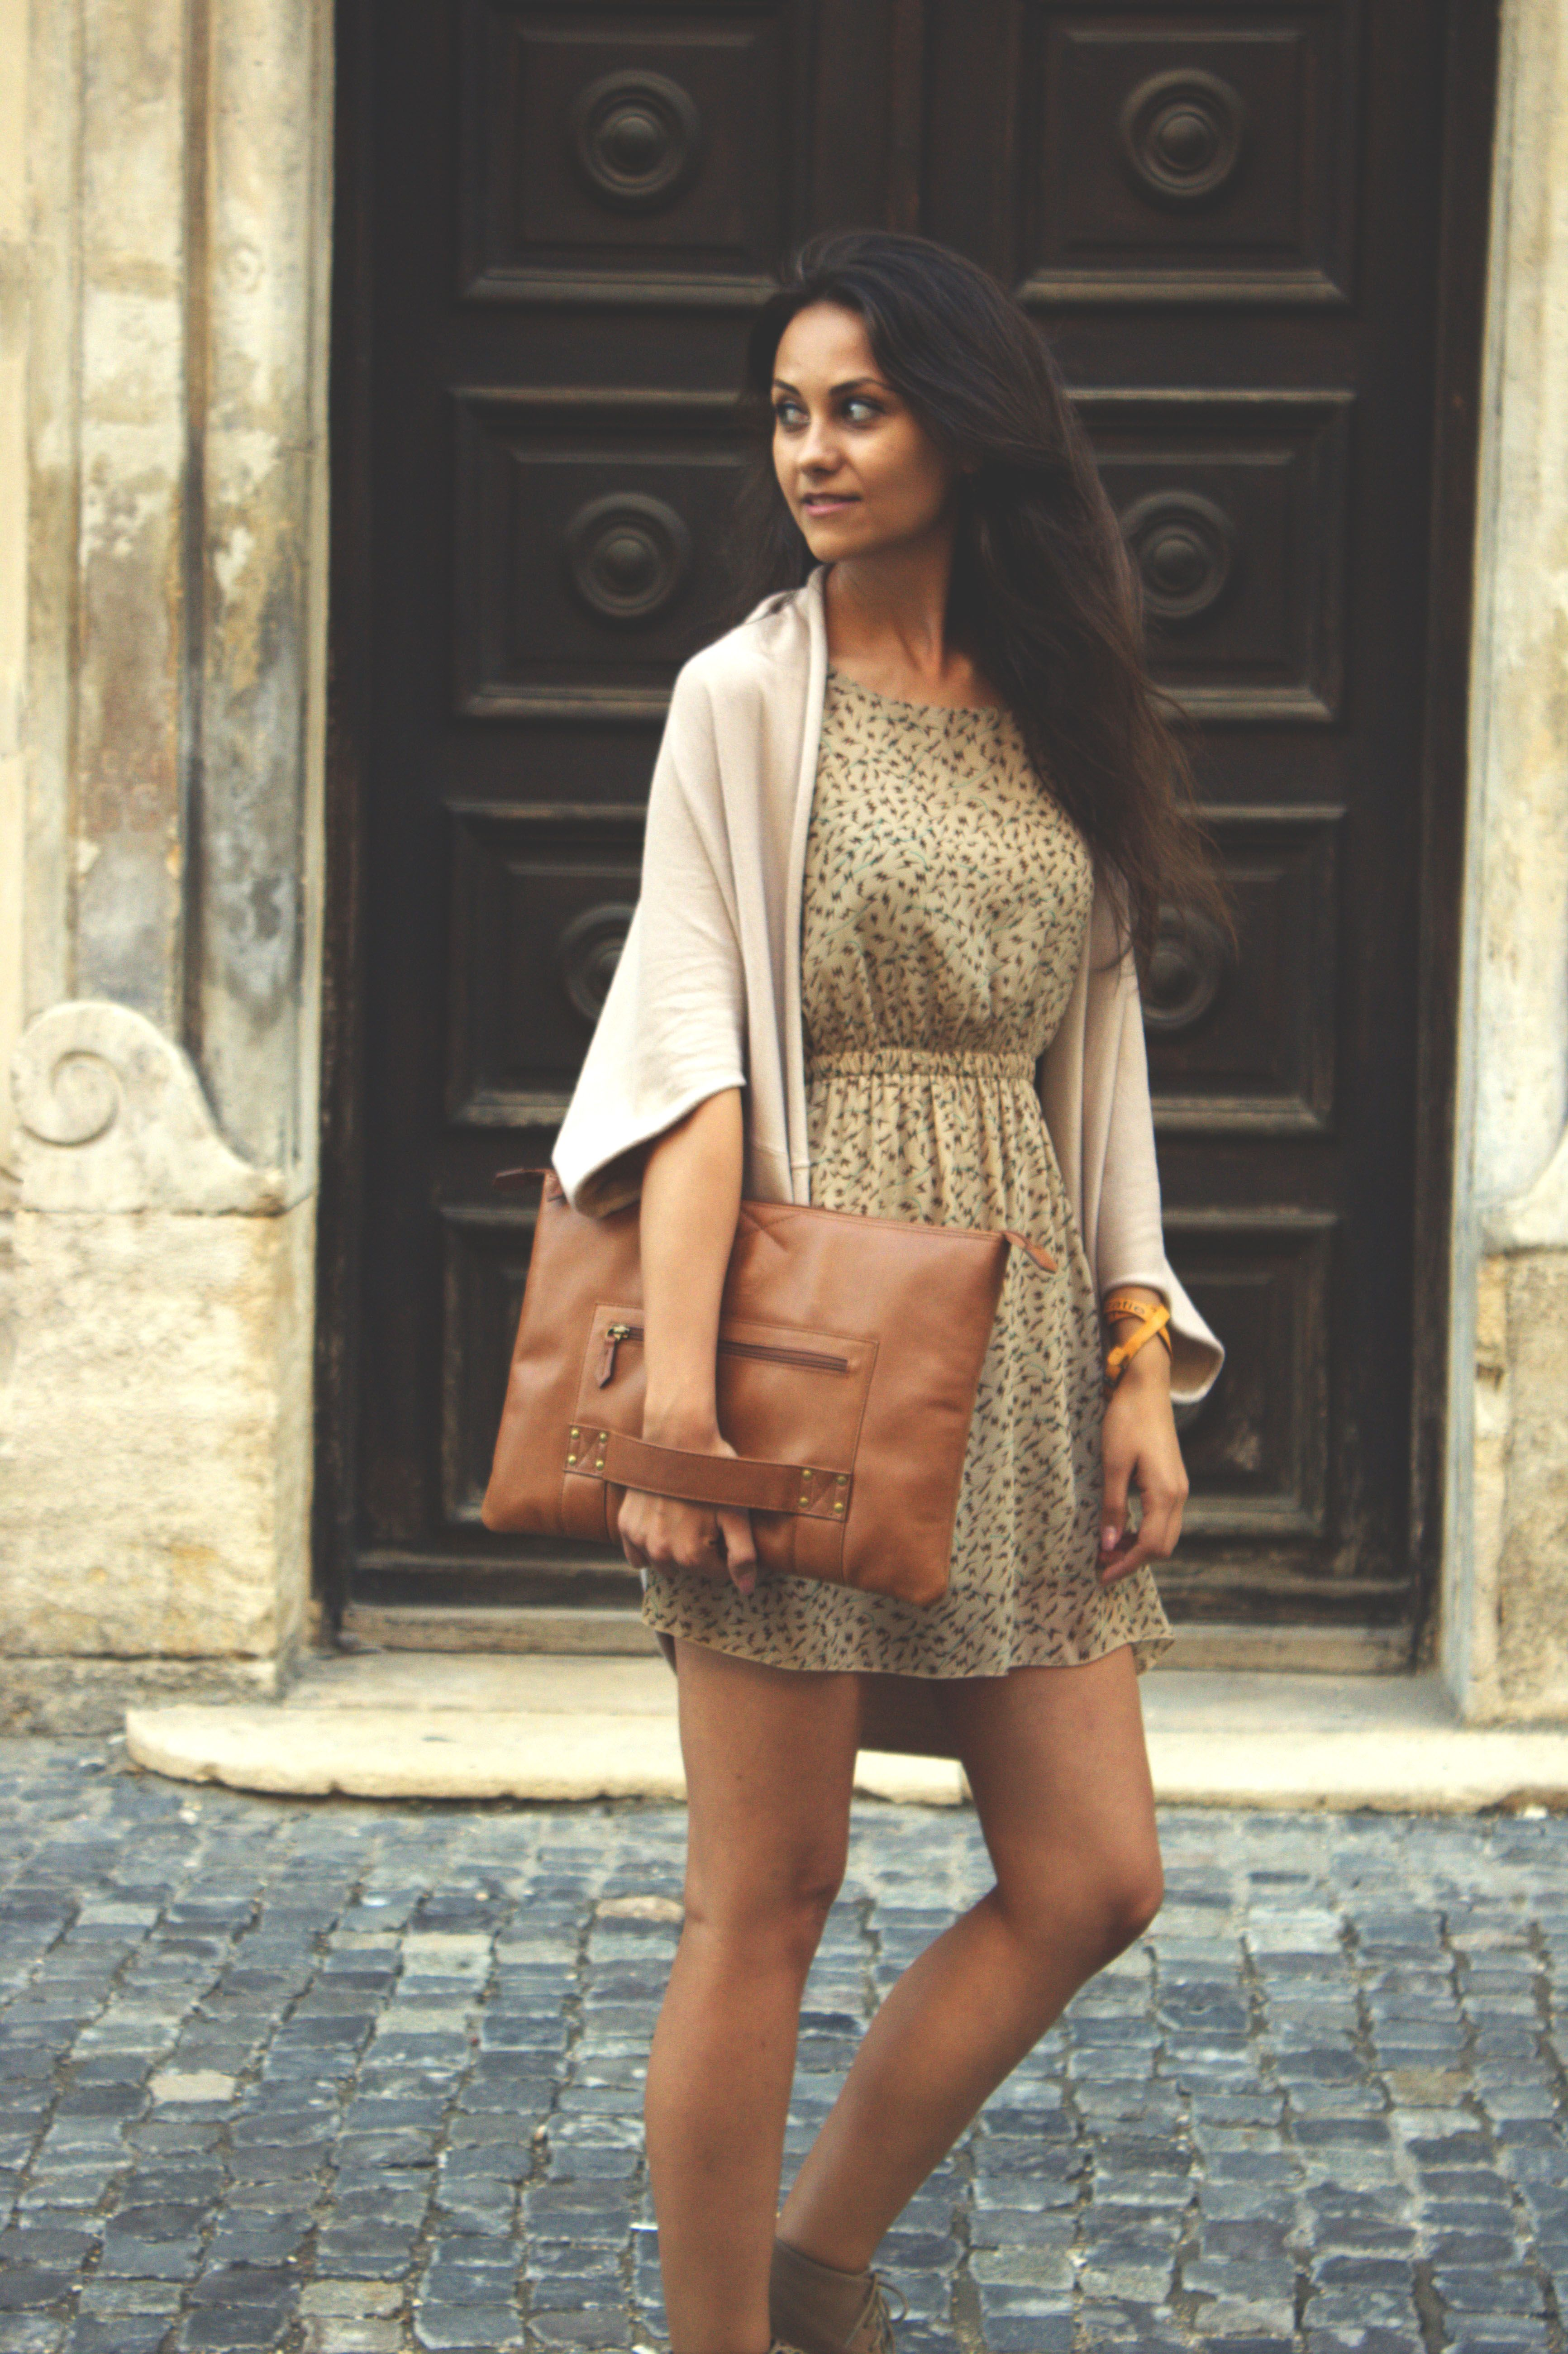 The Chivote leather shoulder bag / clutch for your macbook #Chivote #leather #bag www.chivote.com £79.99